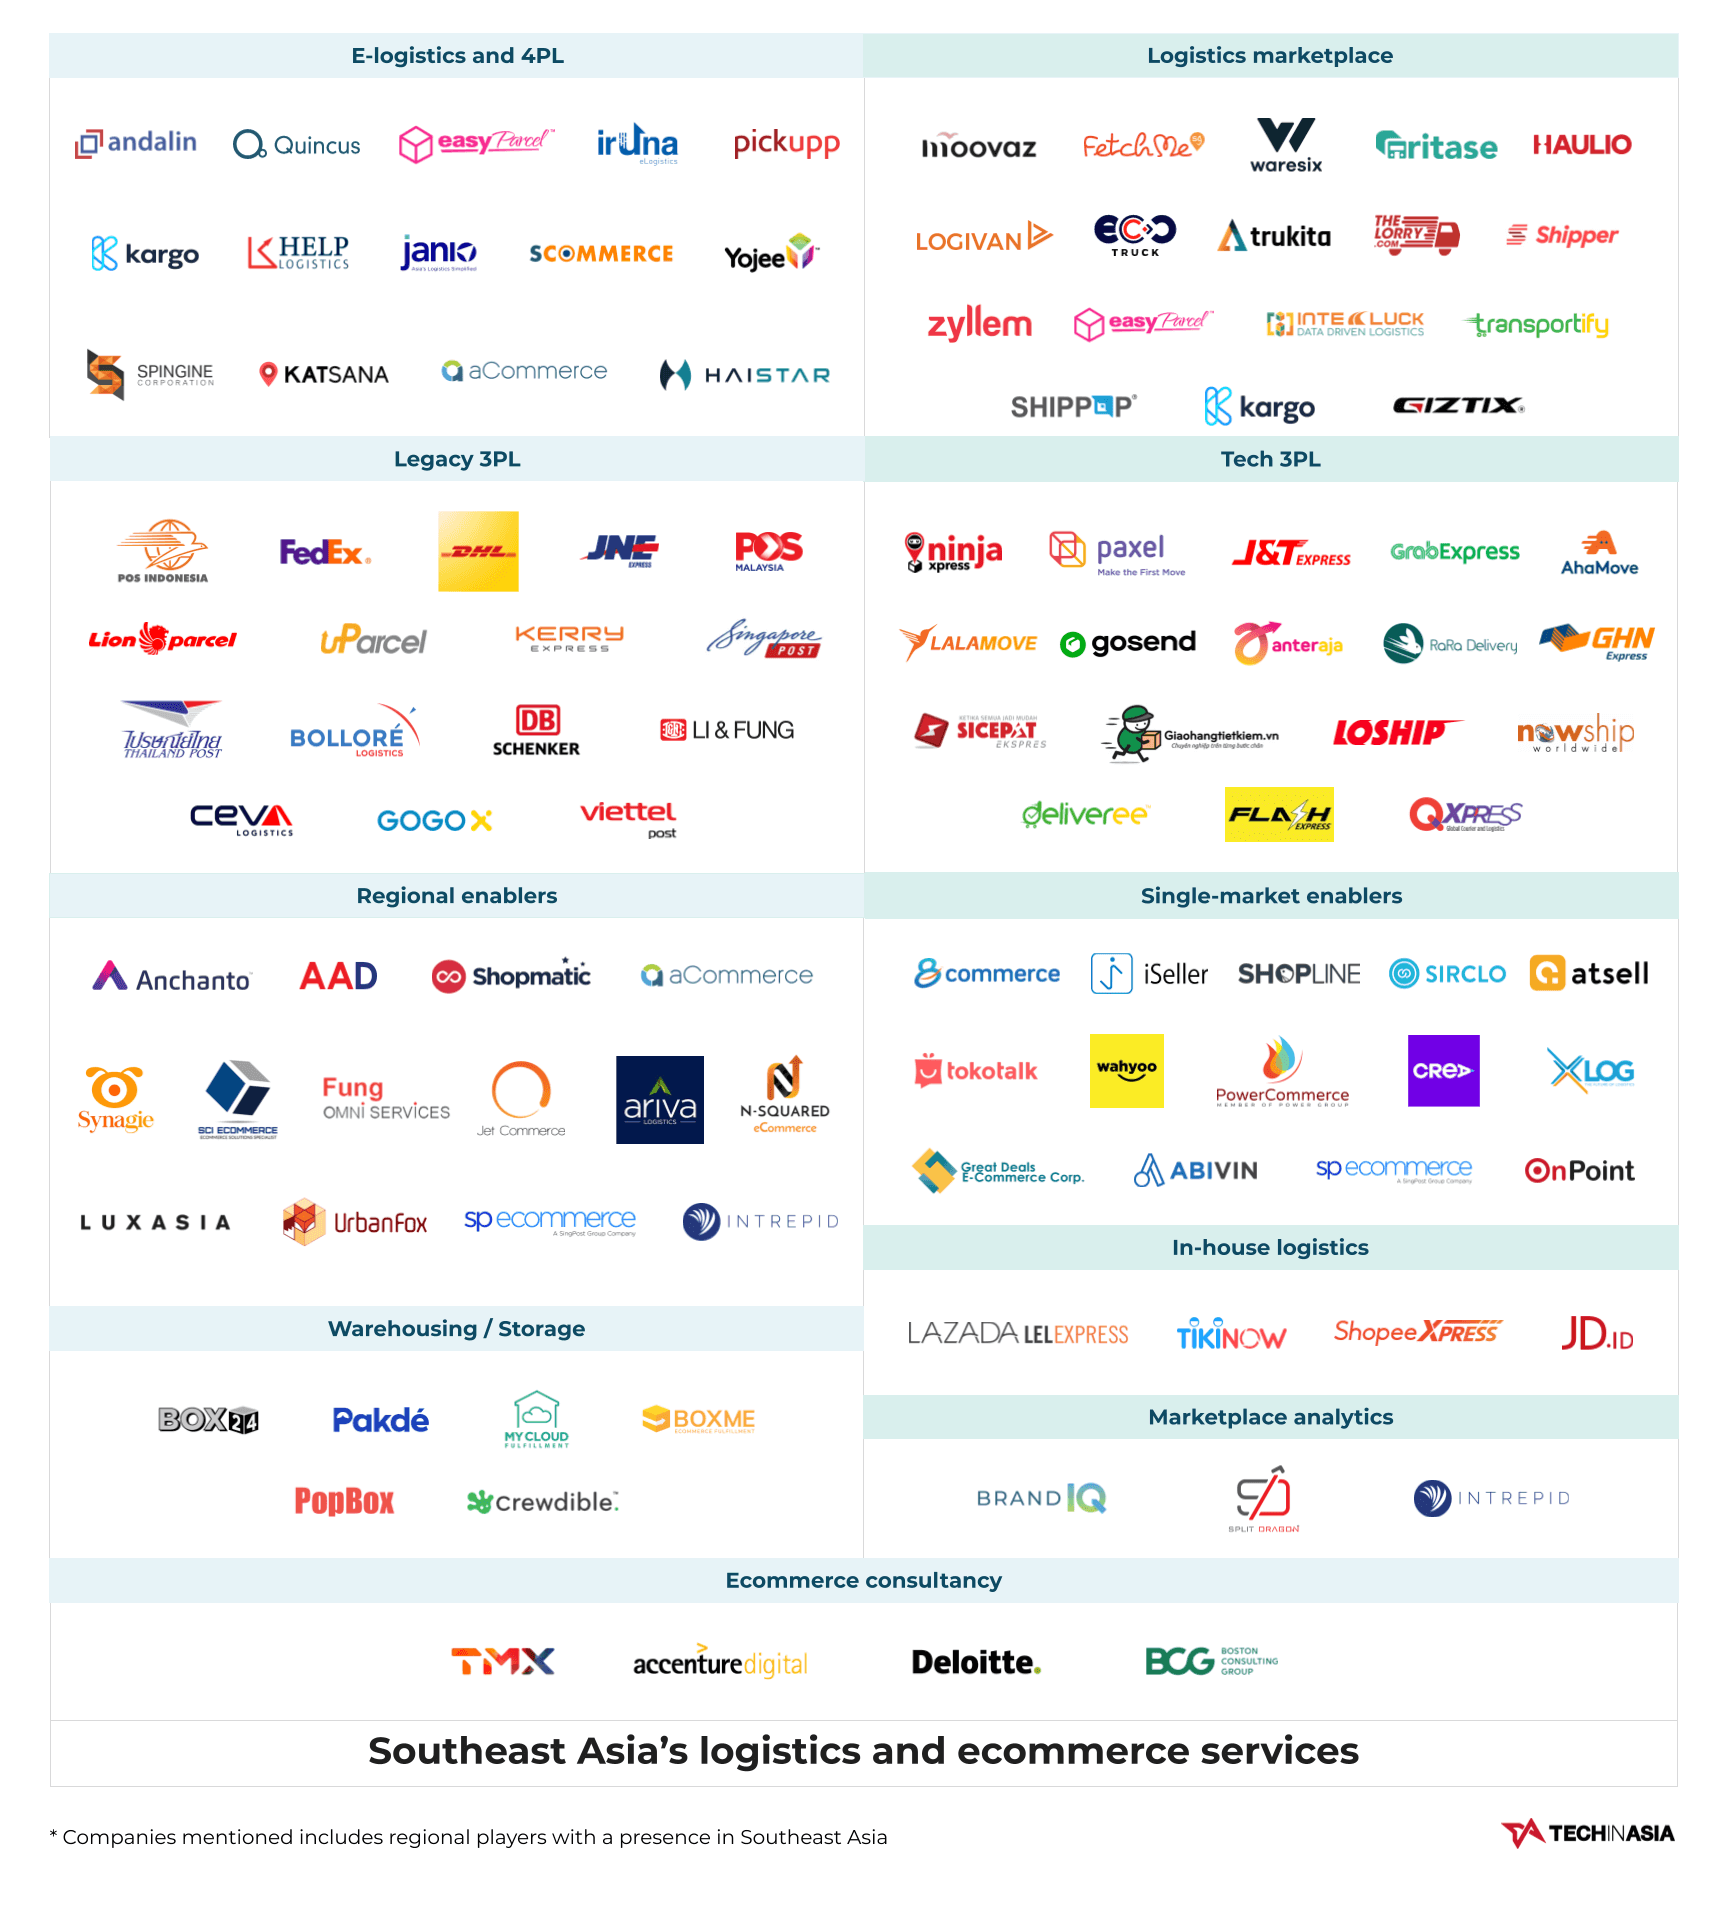 TechInAsia: The key ecommerce logistics players and enablers in Southeast Asia